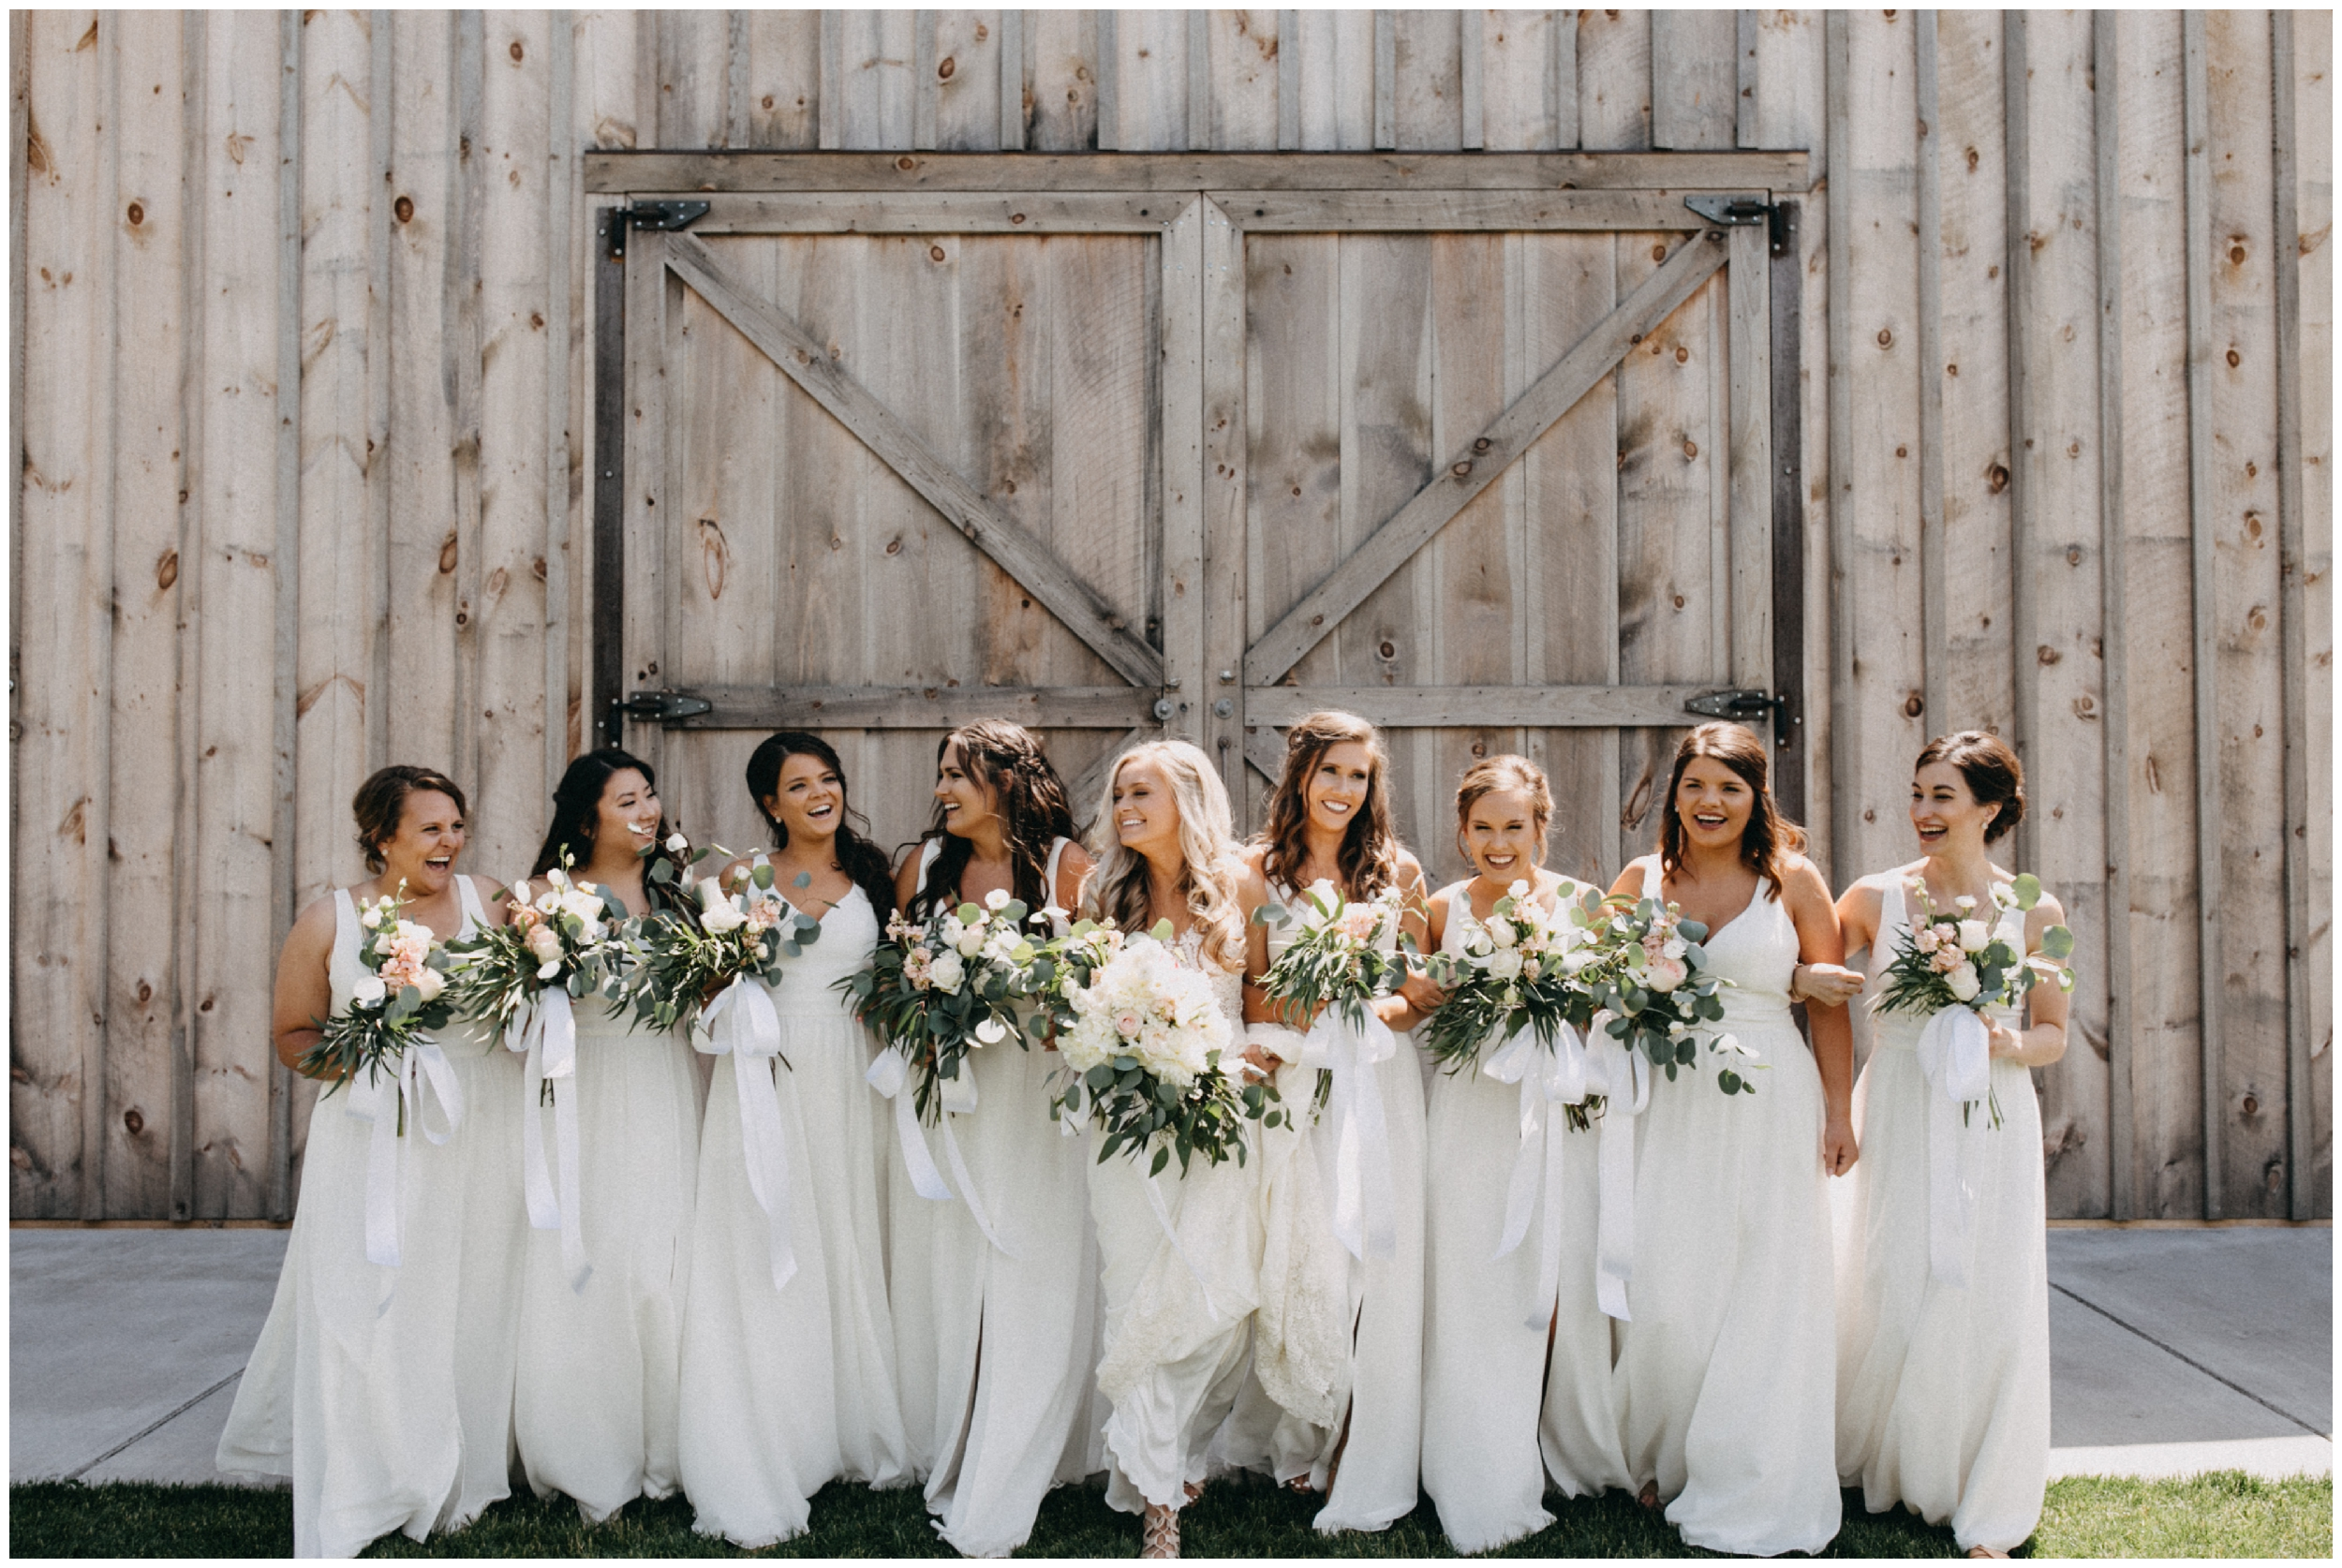 Bridesmaids in white dresses at Creekside Farm wedding